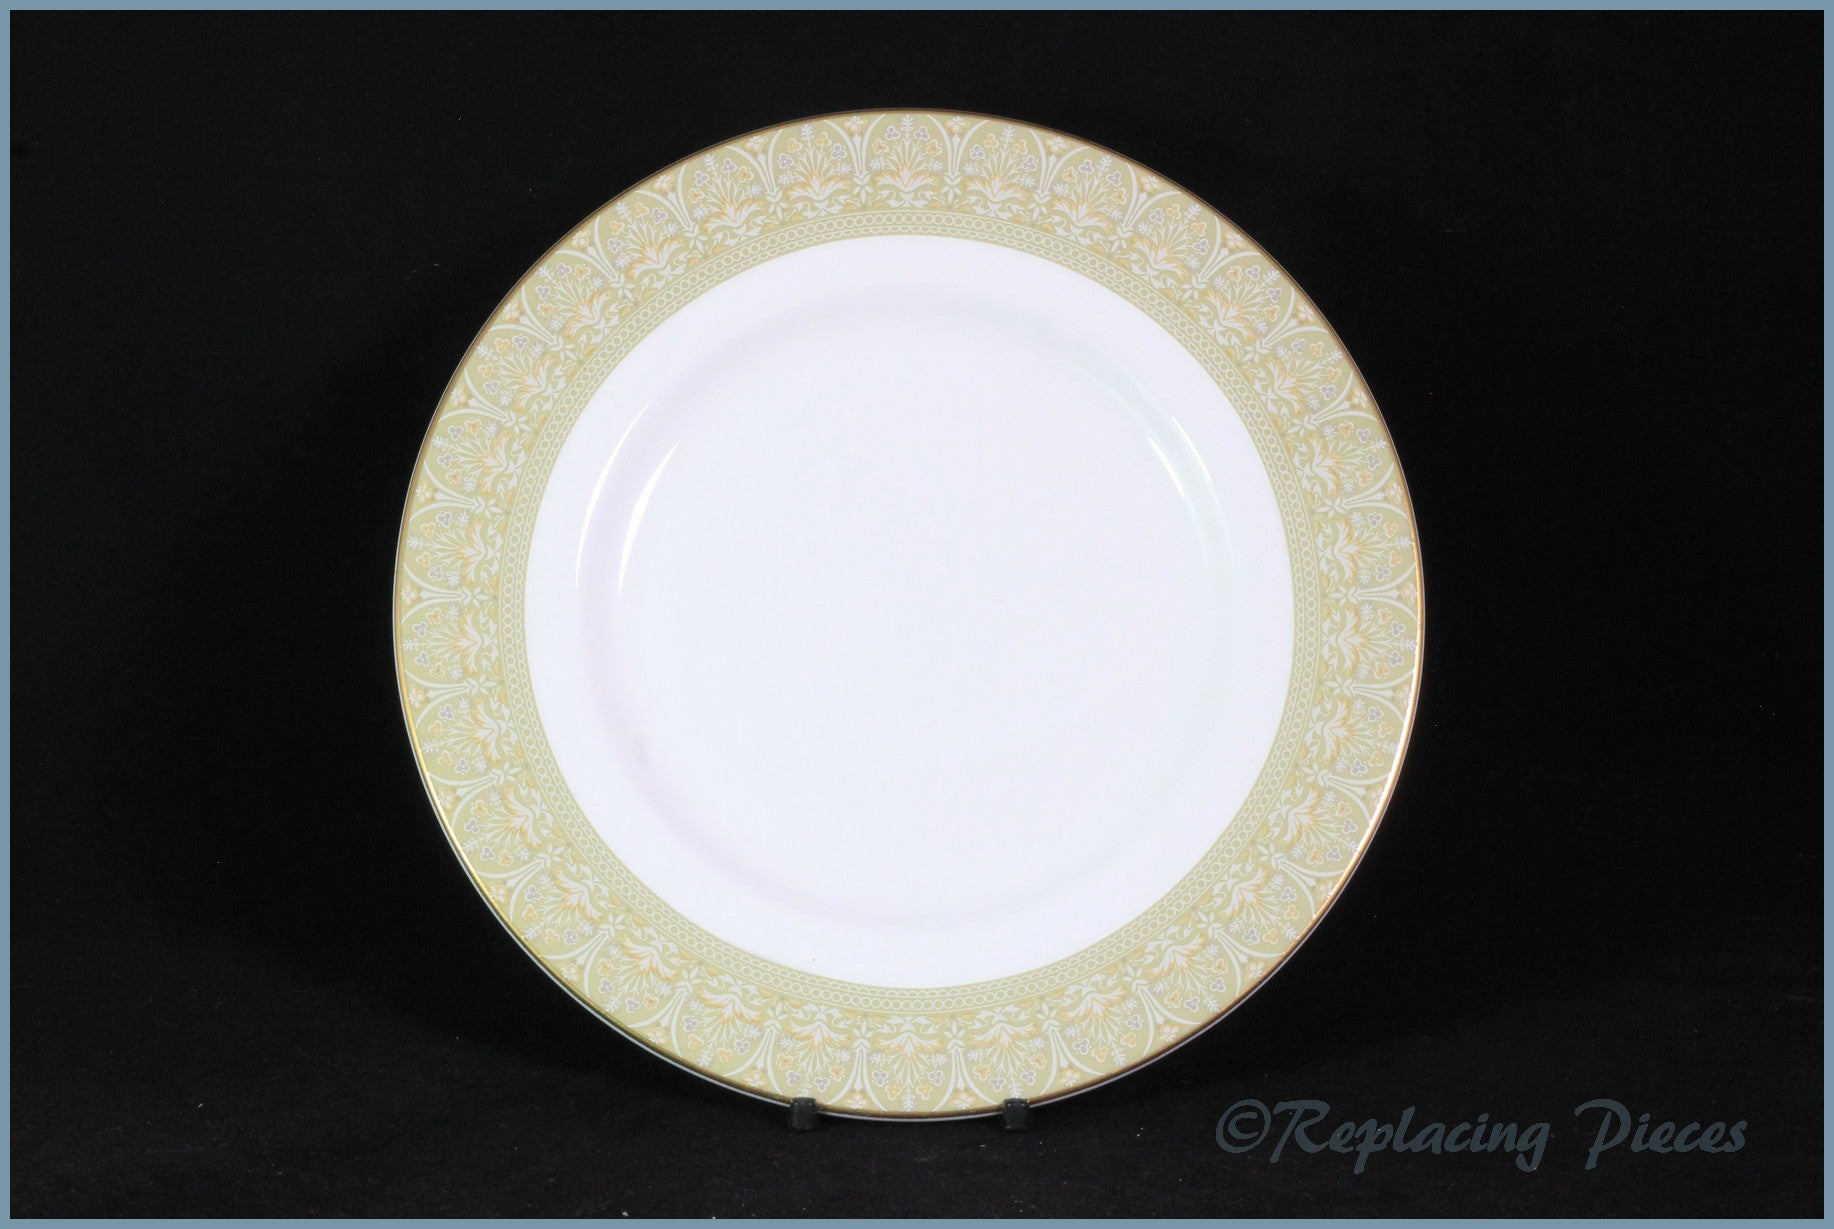 Royal Doulton - Sonnet (H5012) - Dinner Plate